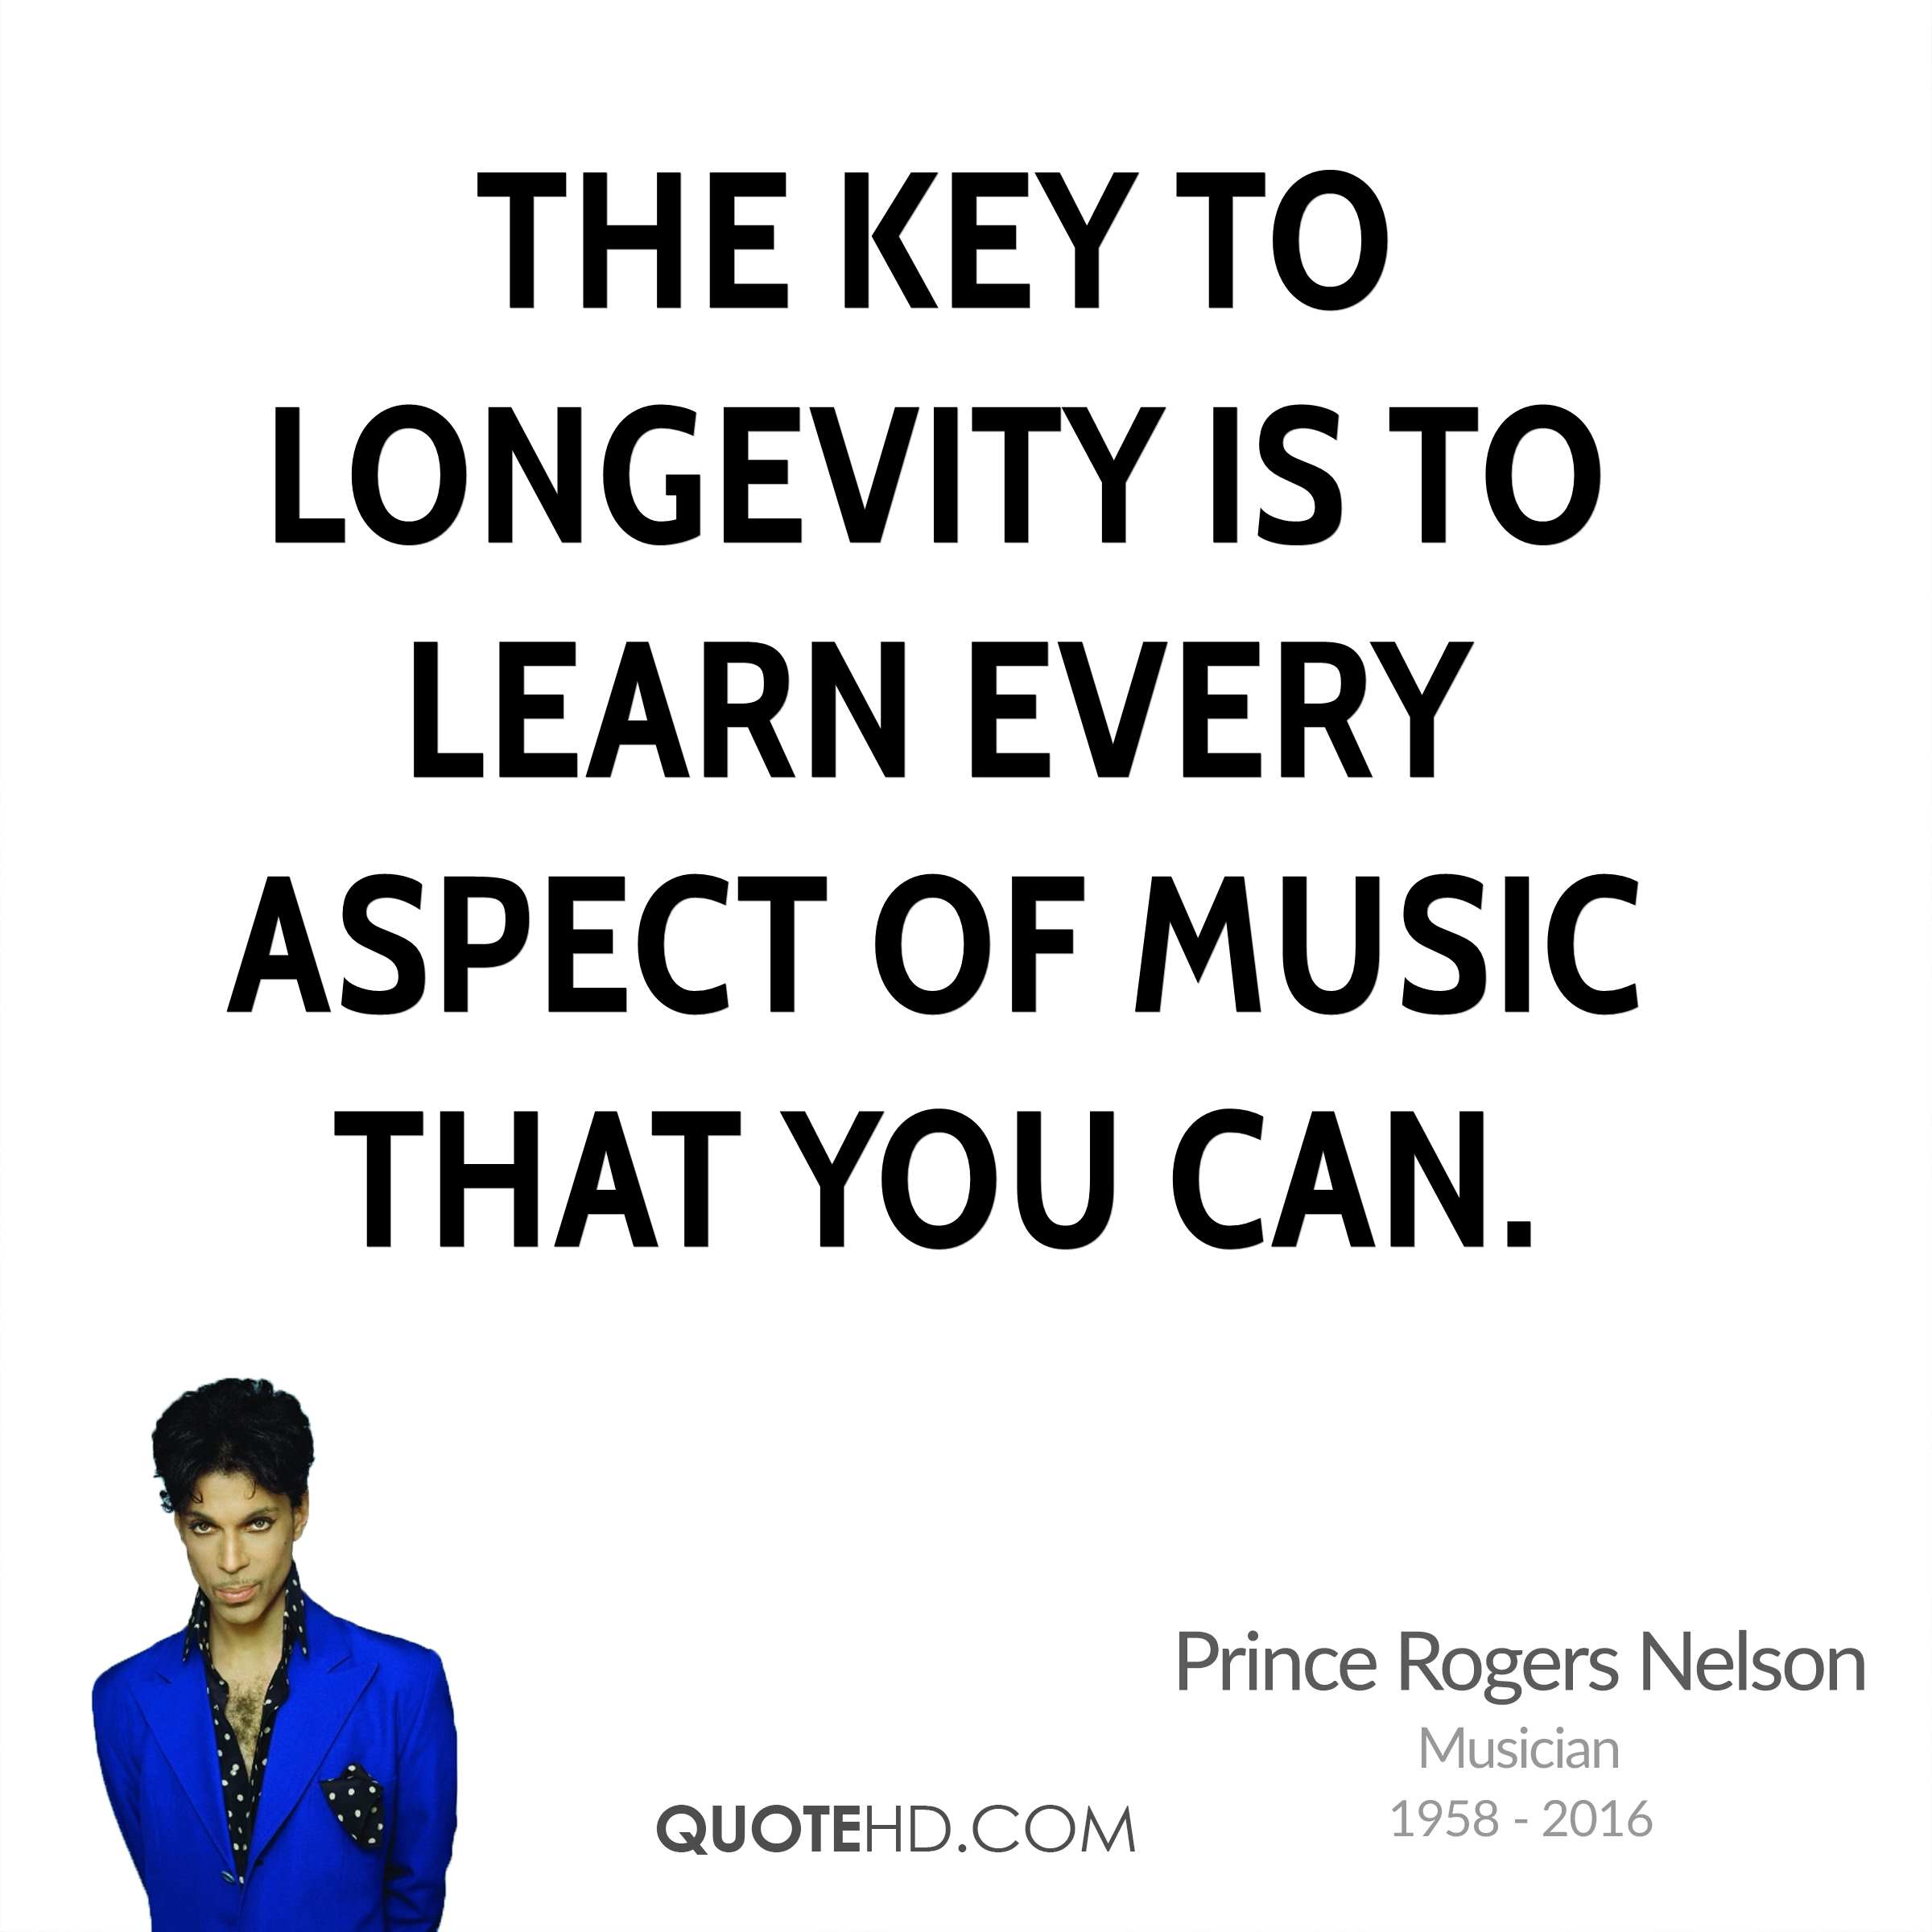 The key to longevity is to learn every aspect of music that you can.